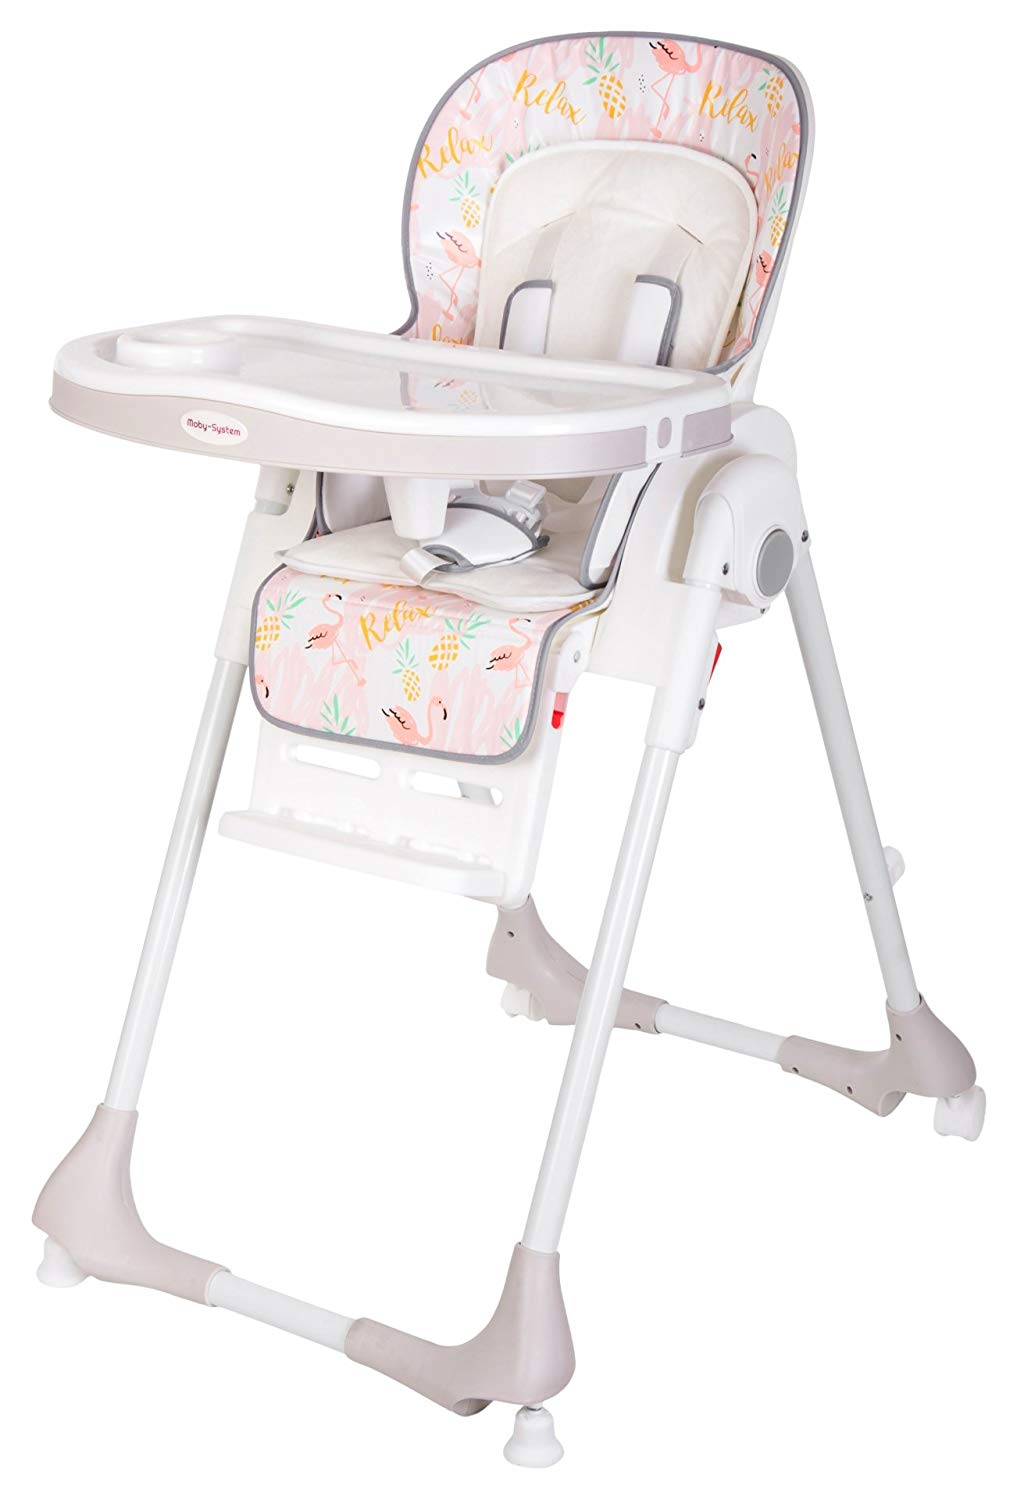 Moby-System Baby Highchair DALIA | 75 x 56 x 108 cm | with Safety Belt